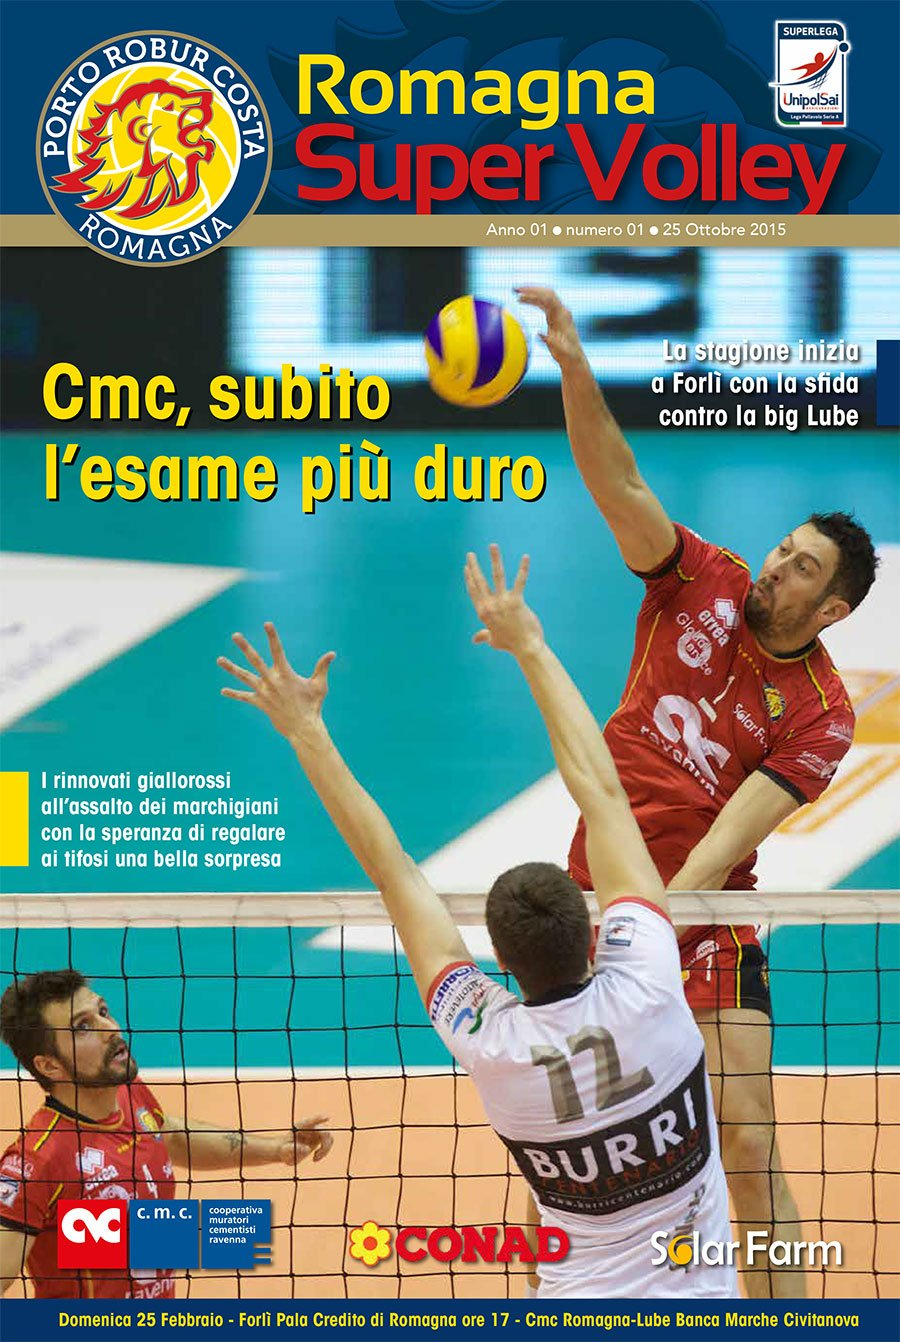 Romagna Super Volley